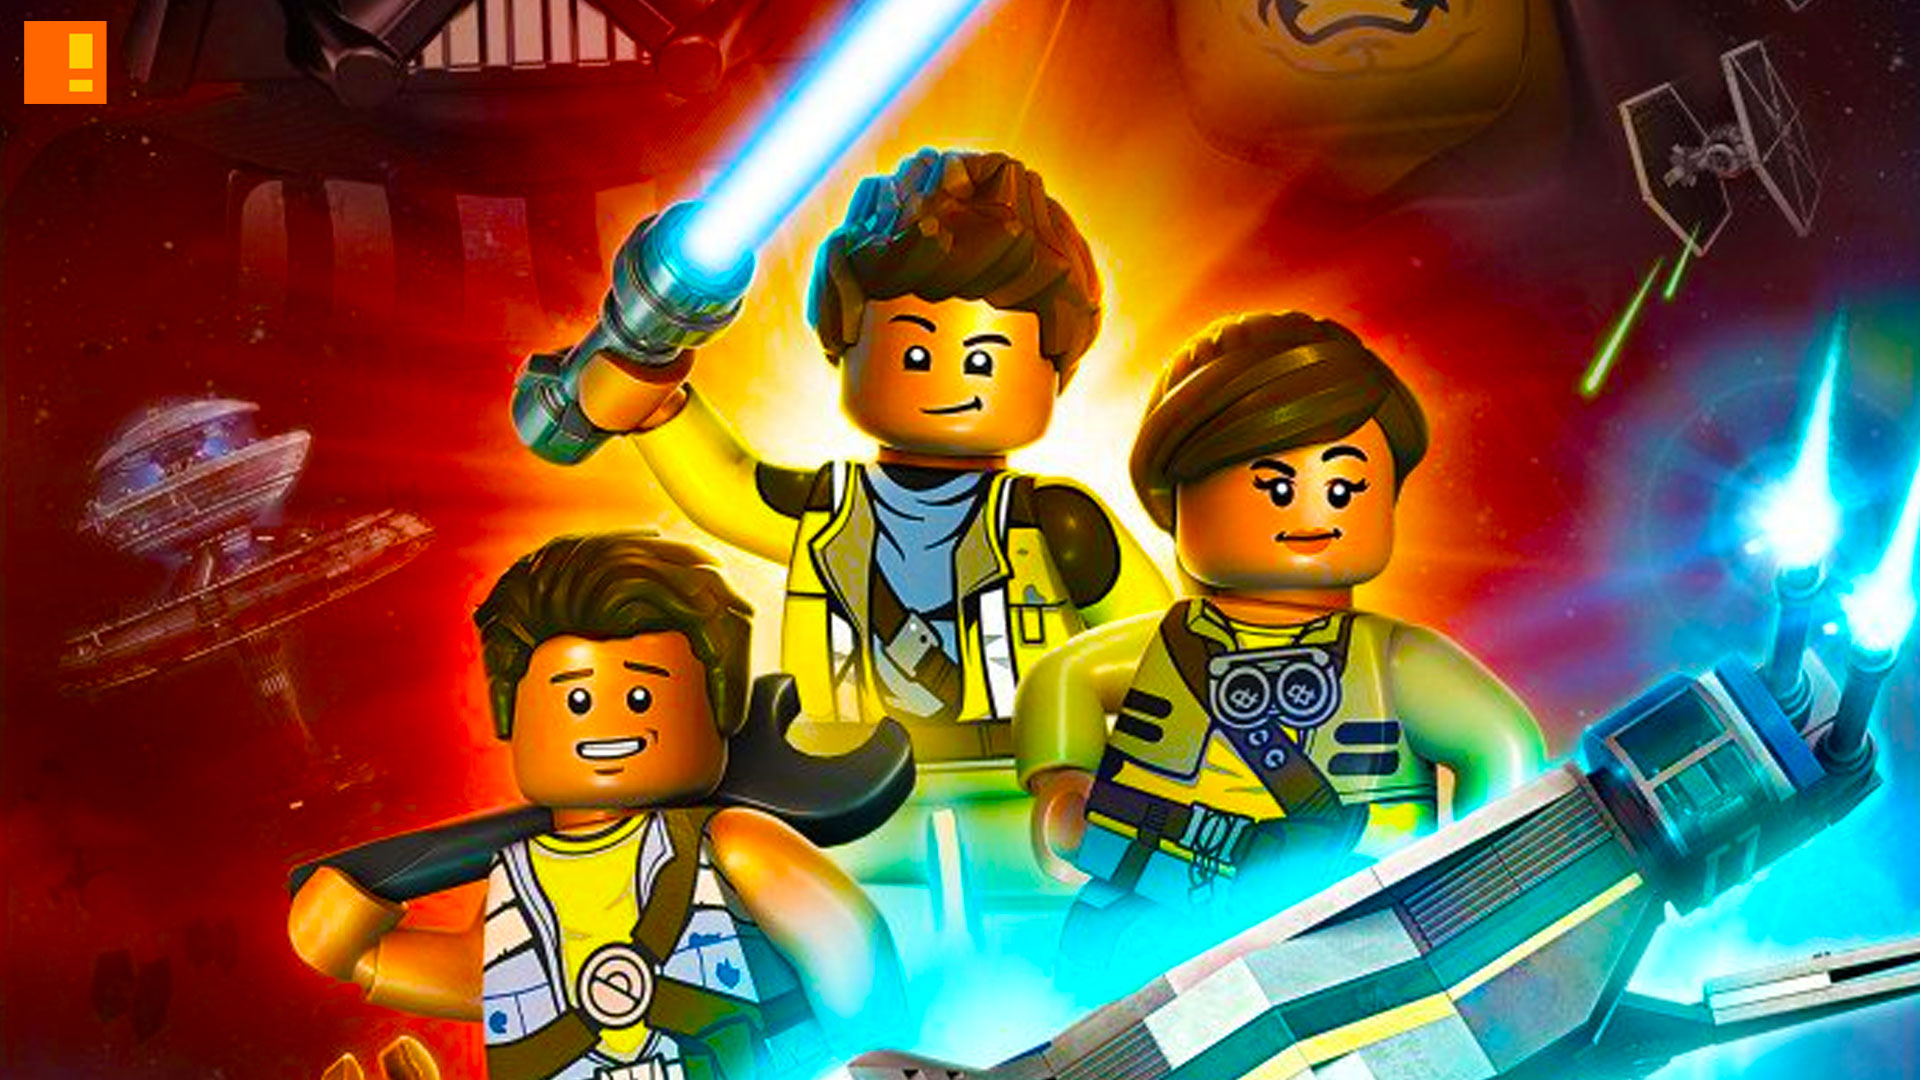 lego star wars the freemaker adventures. lego. lucasfilm. star wars. disney. entertainment on tap. @theactionpixel